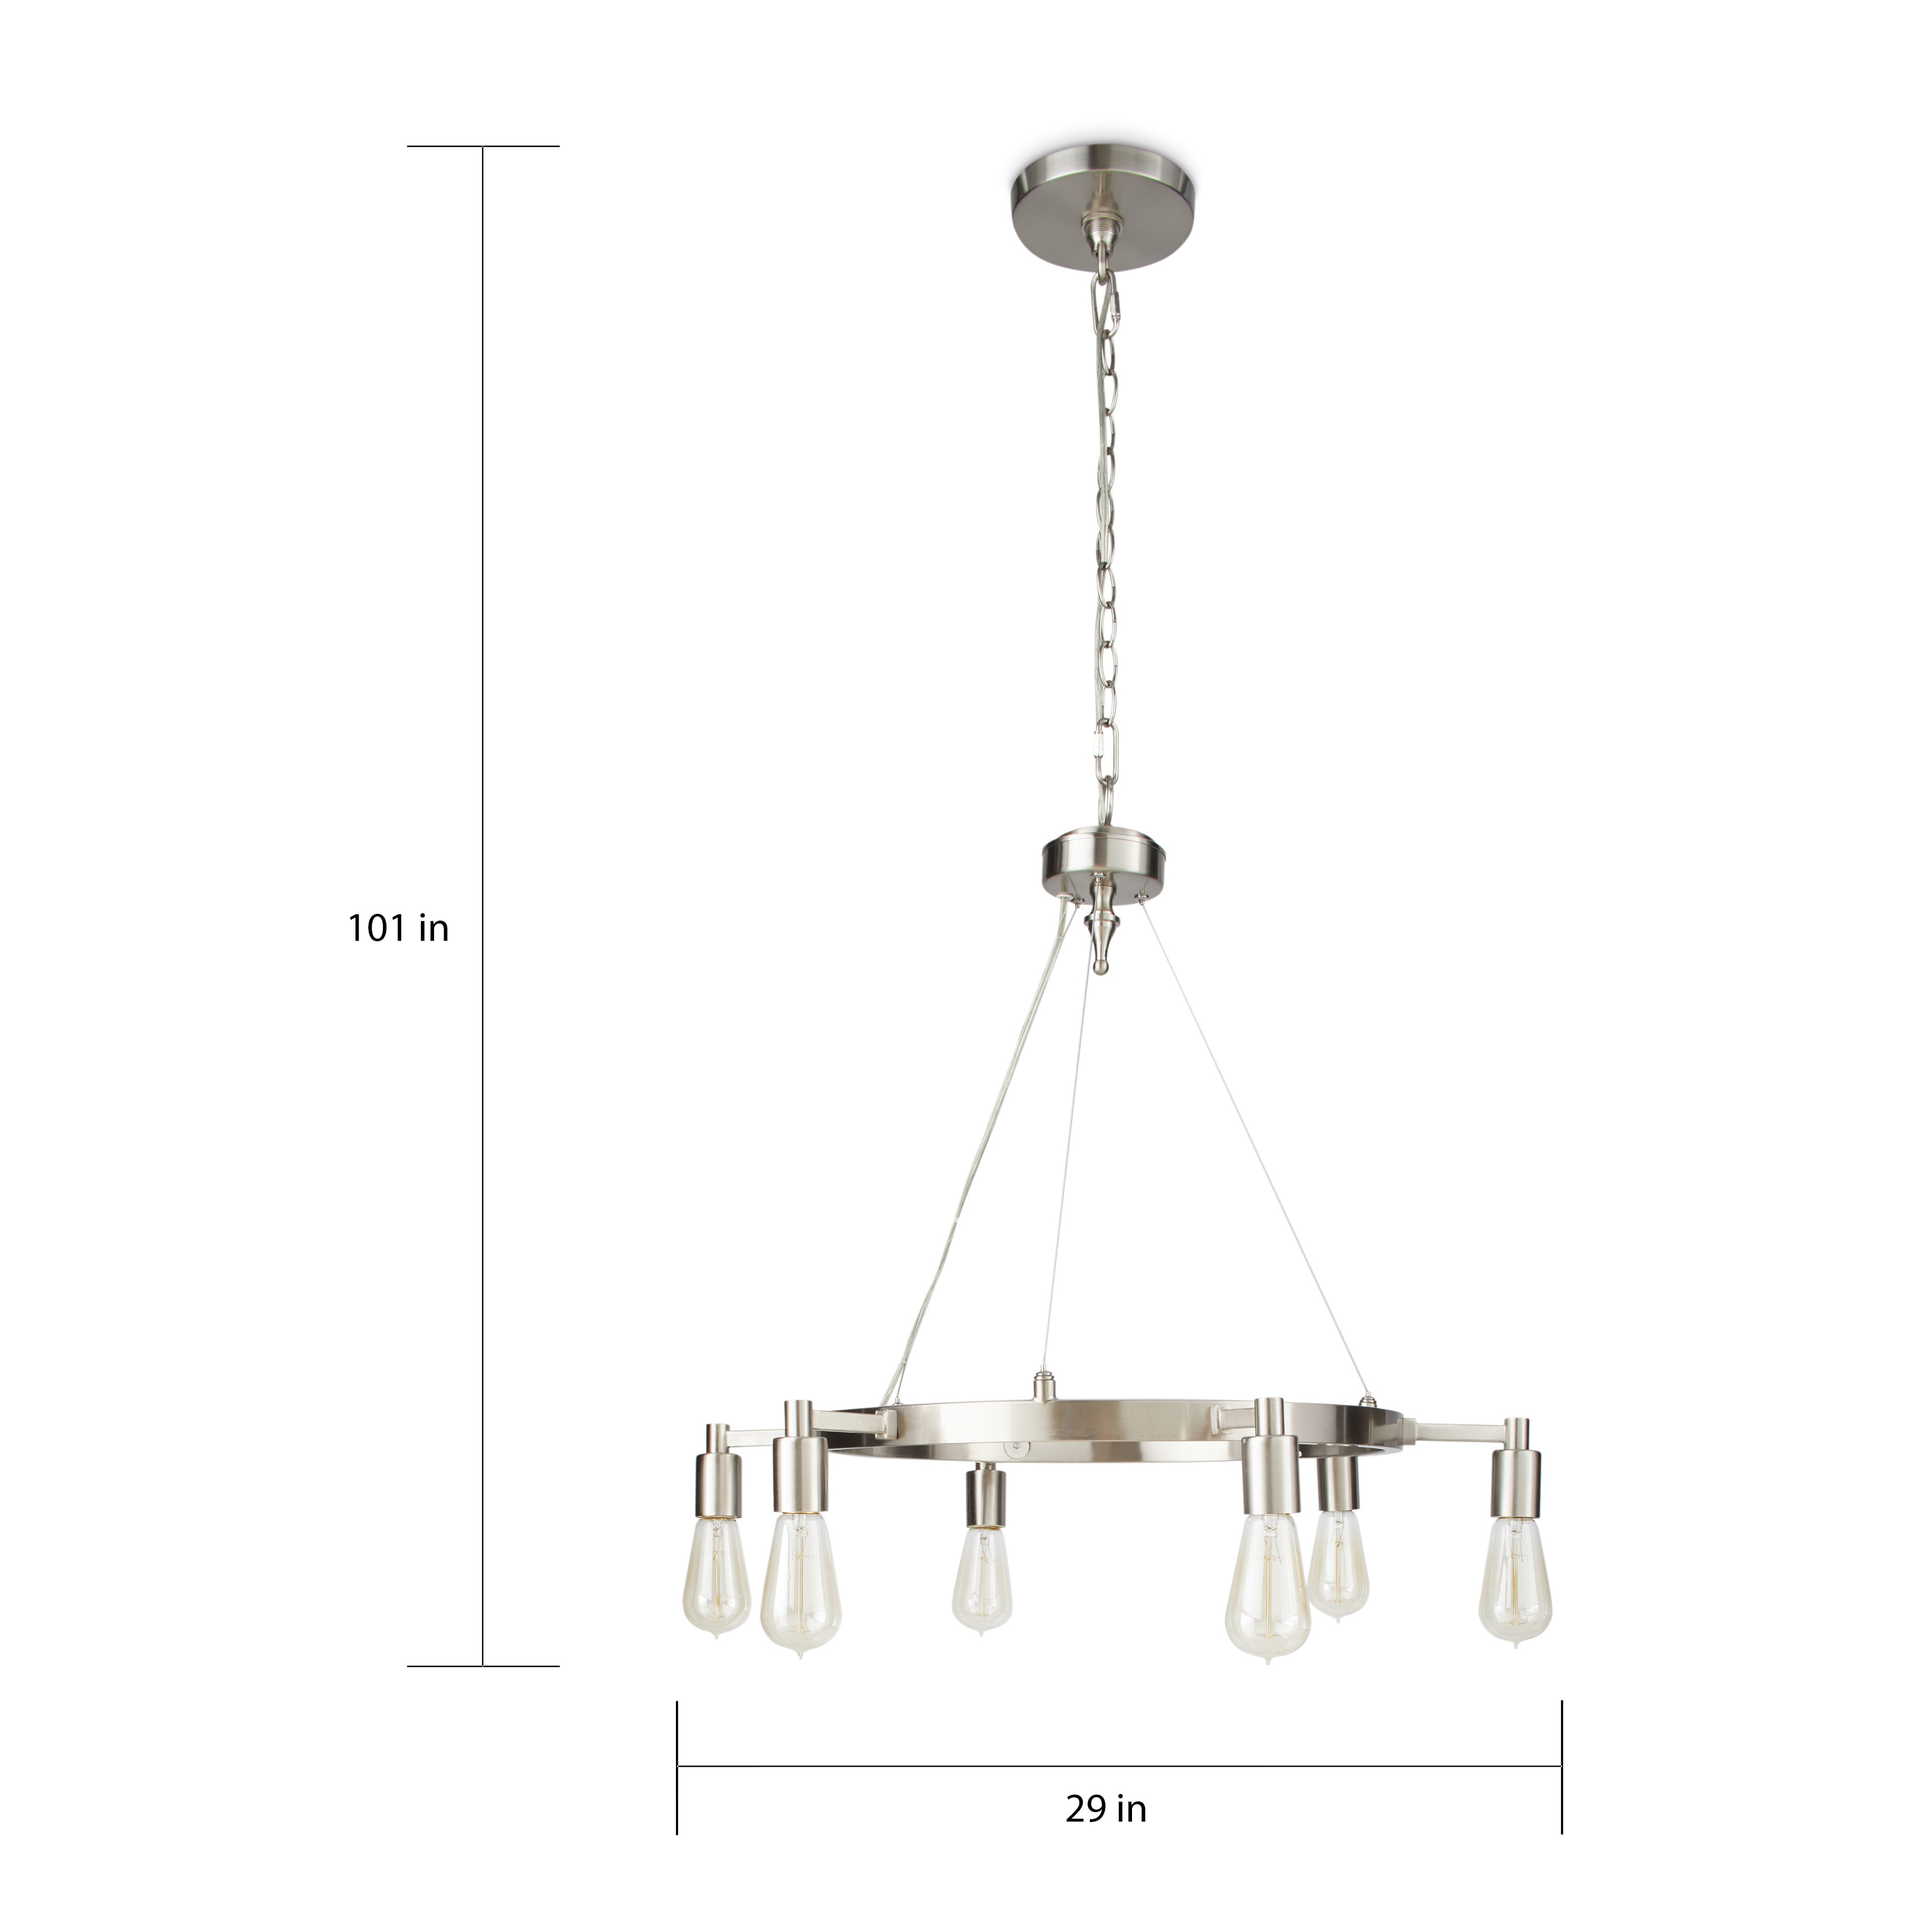 Rae 6 light chandelier free shipping today overstock rae 6 light chandelier free shipping today overstock 14430969 arubaitofo Images